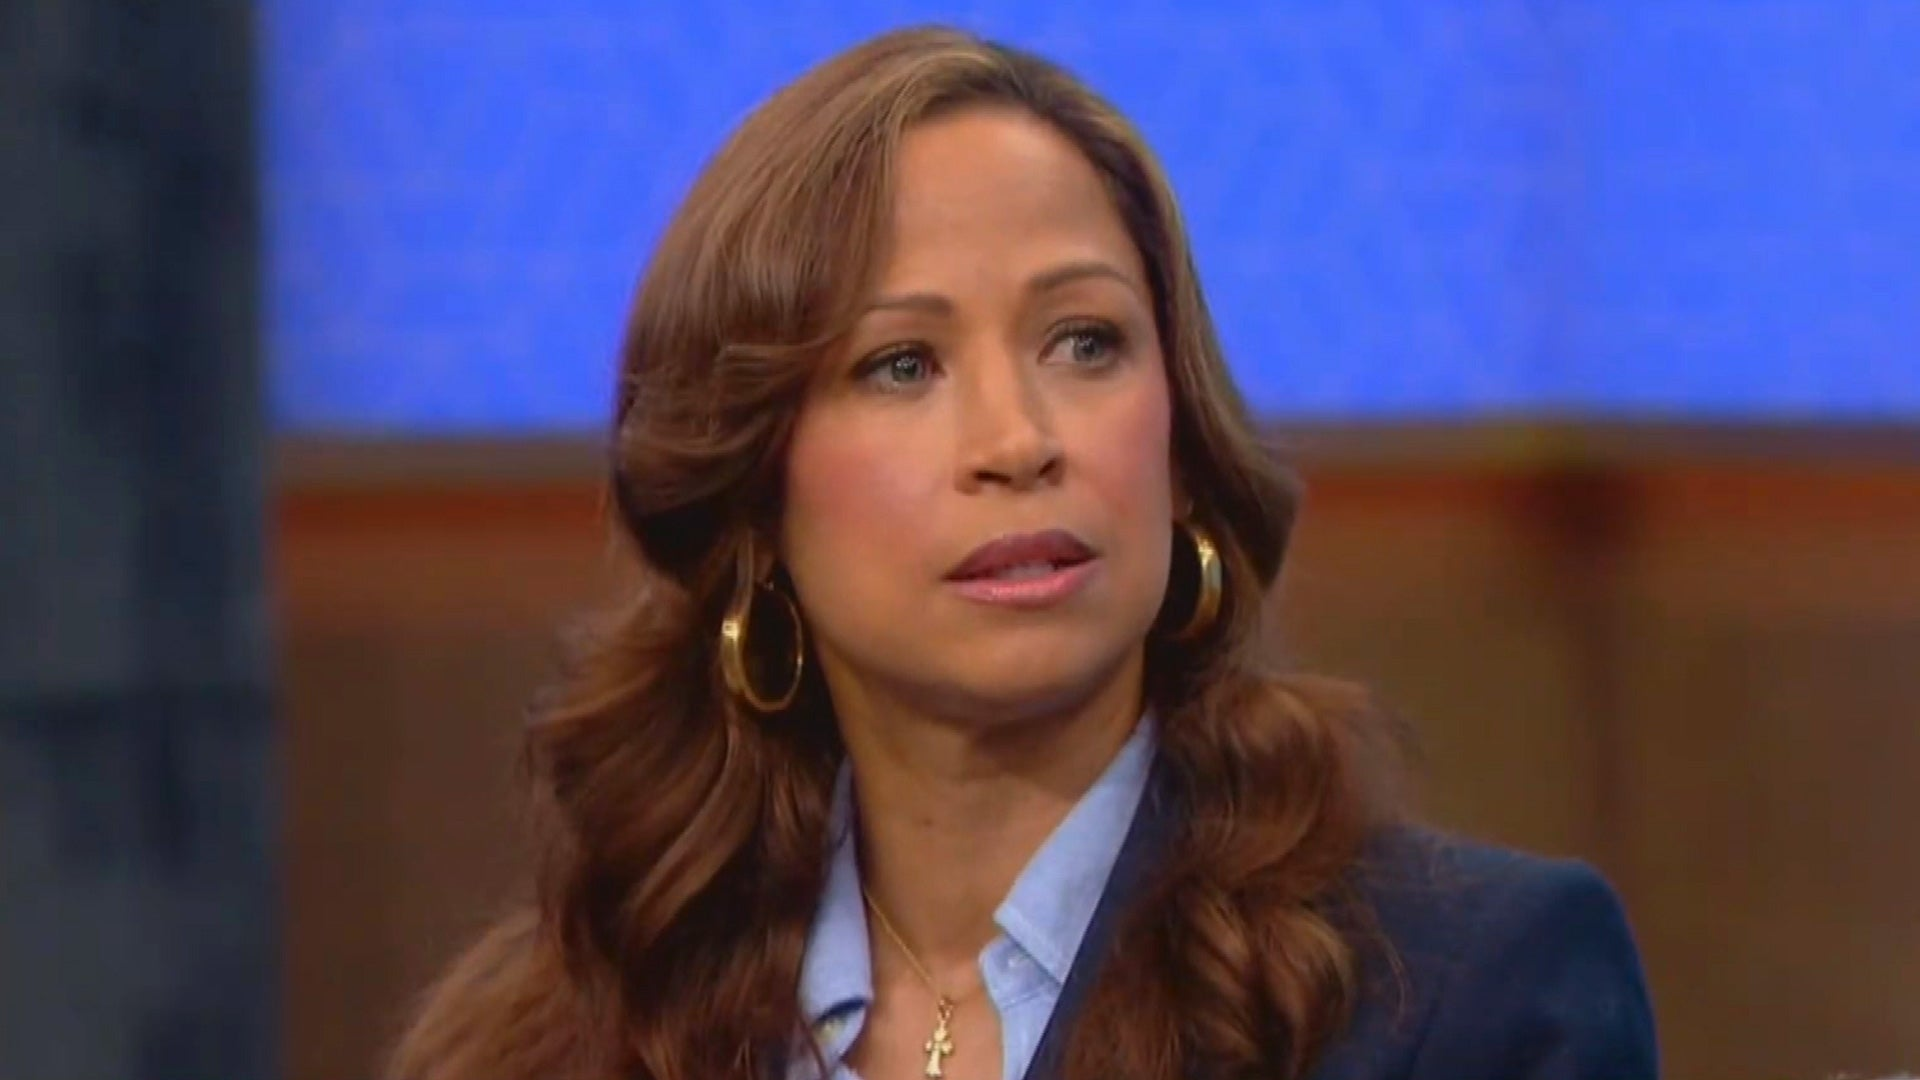 Stacey Dash Details Her Addiction and Past Traumas